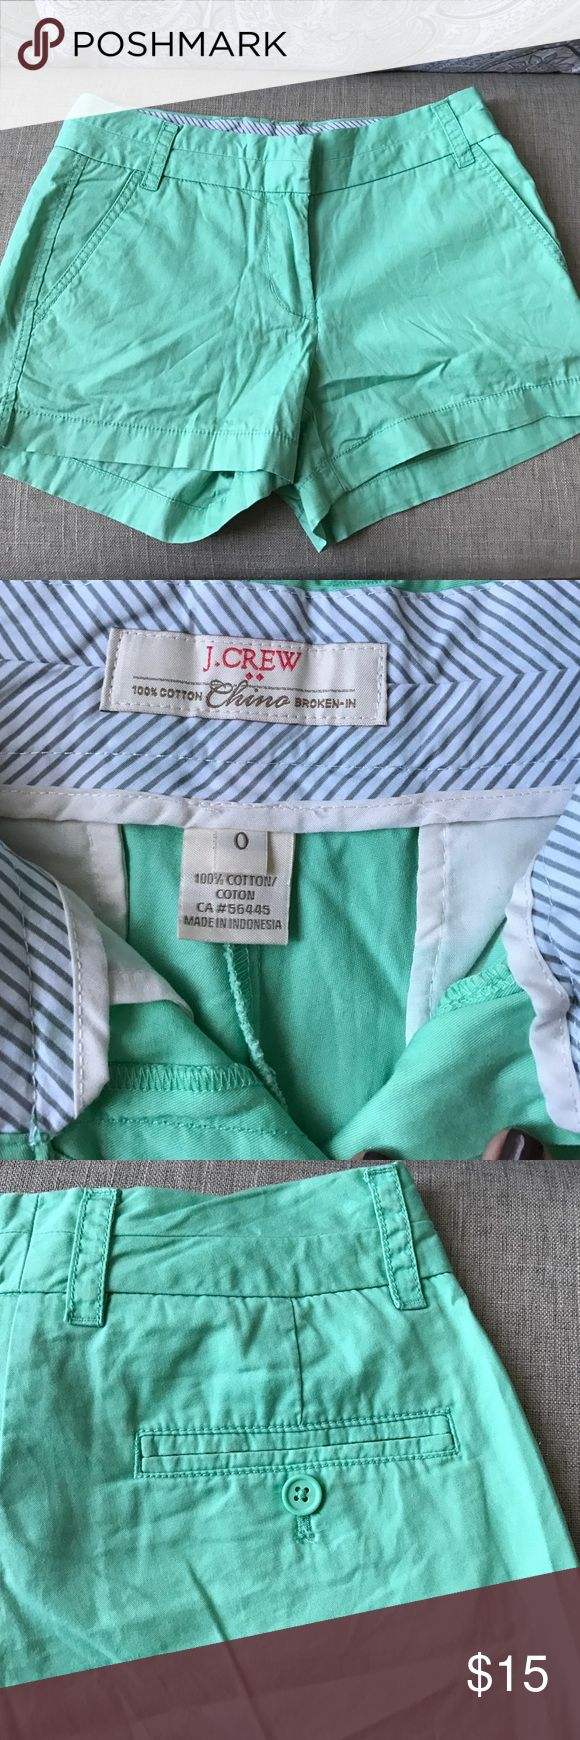 "J Crew Chino Shorts in Seafoam Green J Crew Chino Shorts in Seafoam Green. size 0. 3"" inseam. Originally from outlet store J. Crew Shorts"